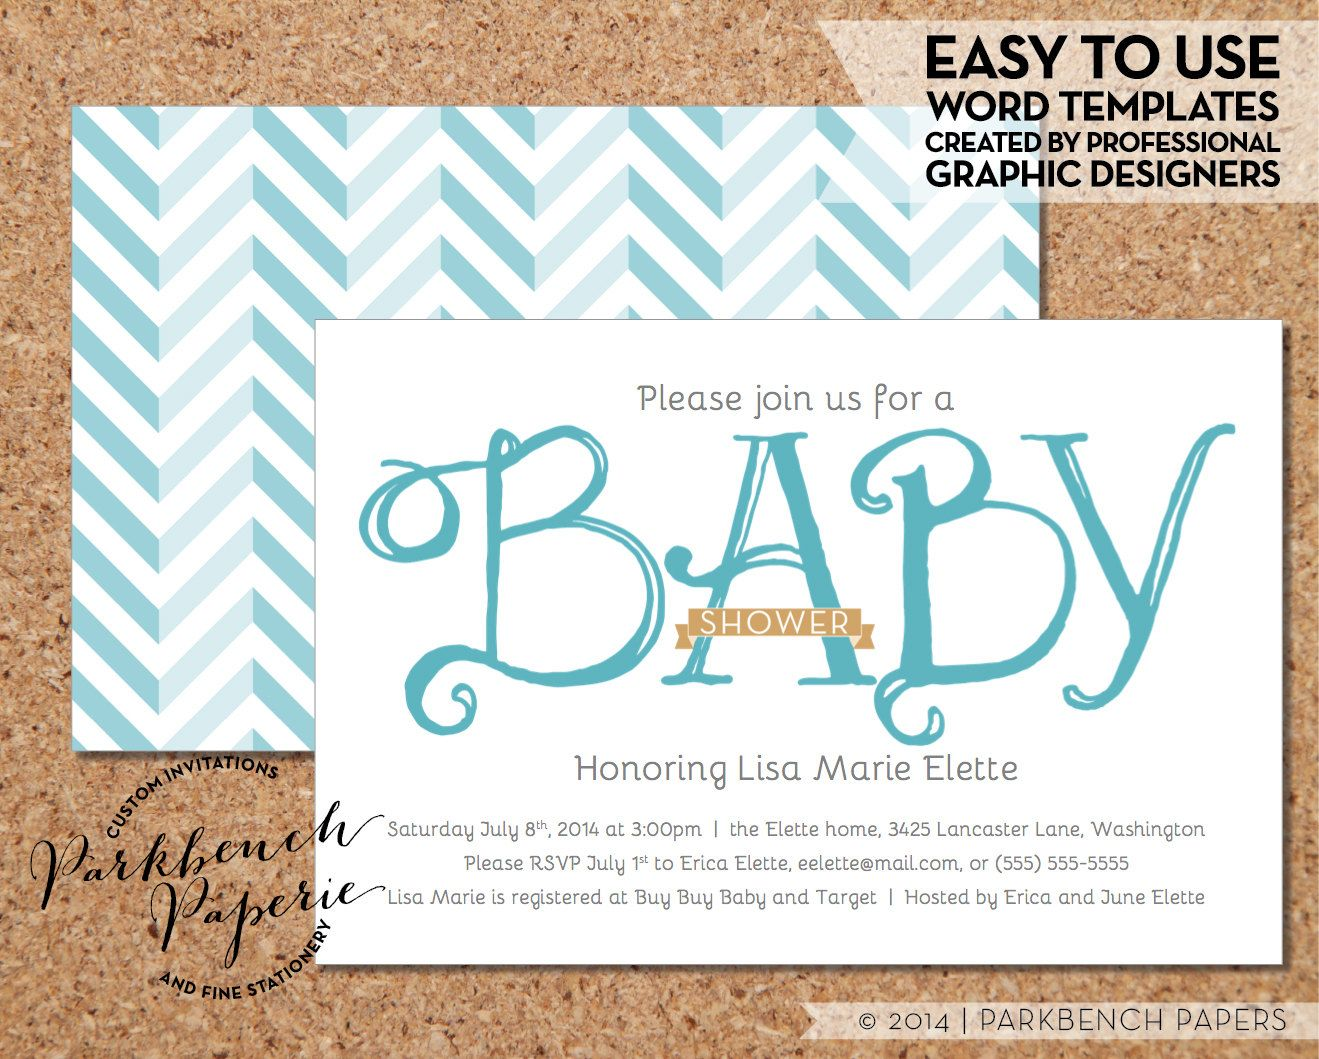 Baby Shower Invitations For Word Templates Brilliant Baby Shower Invitation  Blue Ribbon  Diy Editable Word Template .